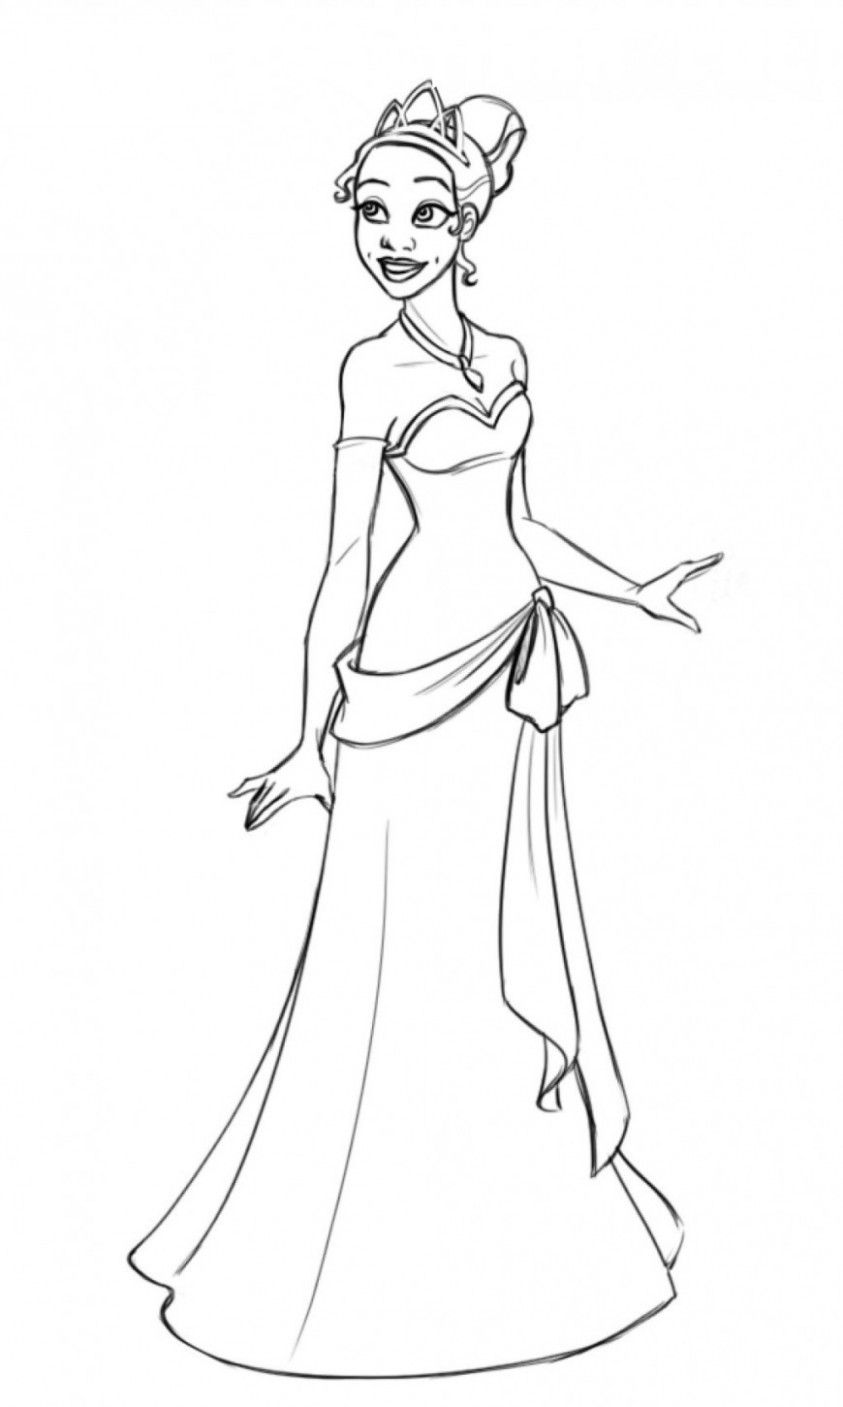 8 Princess Tiana Coloring Pages In 2020 Disney Princess Coloring Pages Princess Coloring Pages Disney Princess Colors